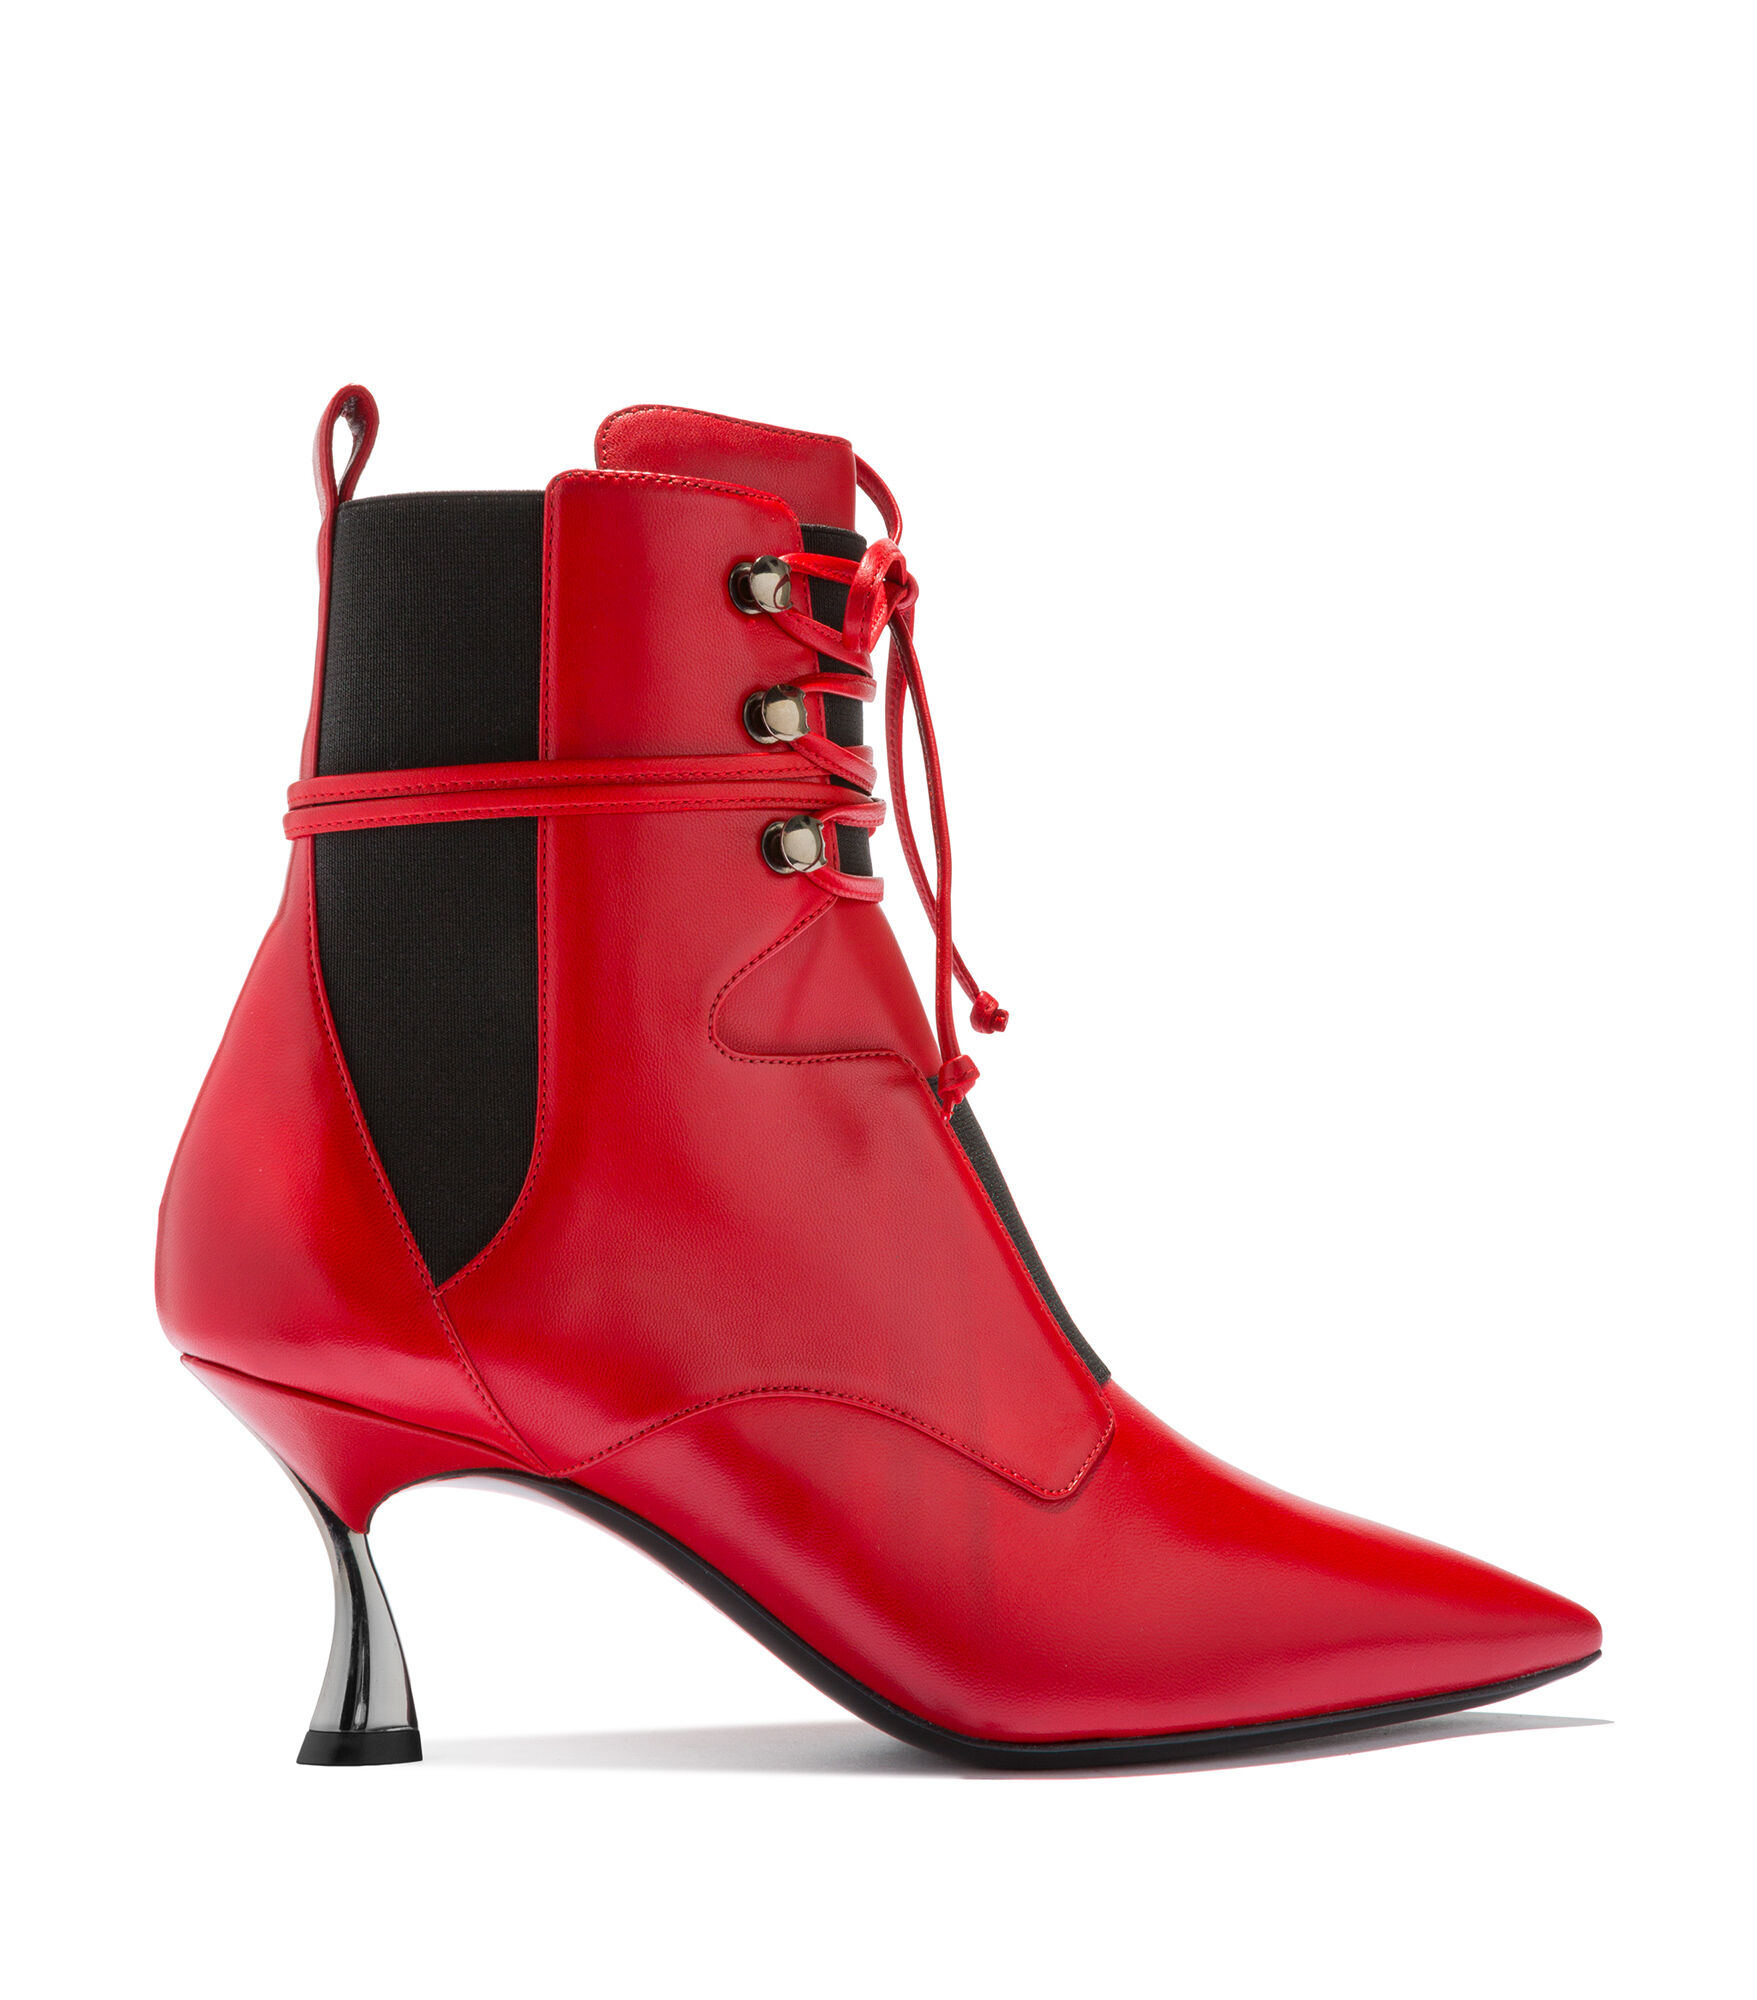 Casadei Ankle Boots - Dolores Chili Pepper Calf Leather